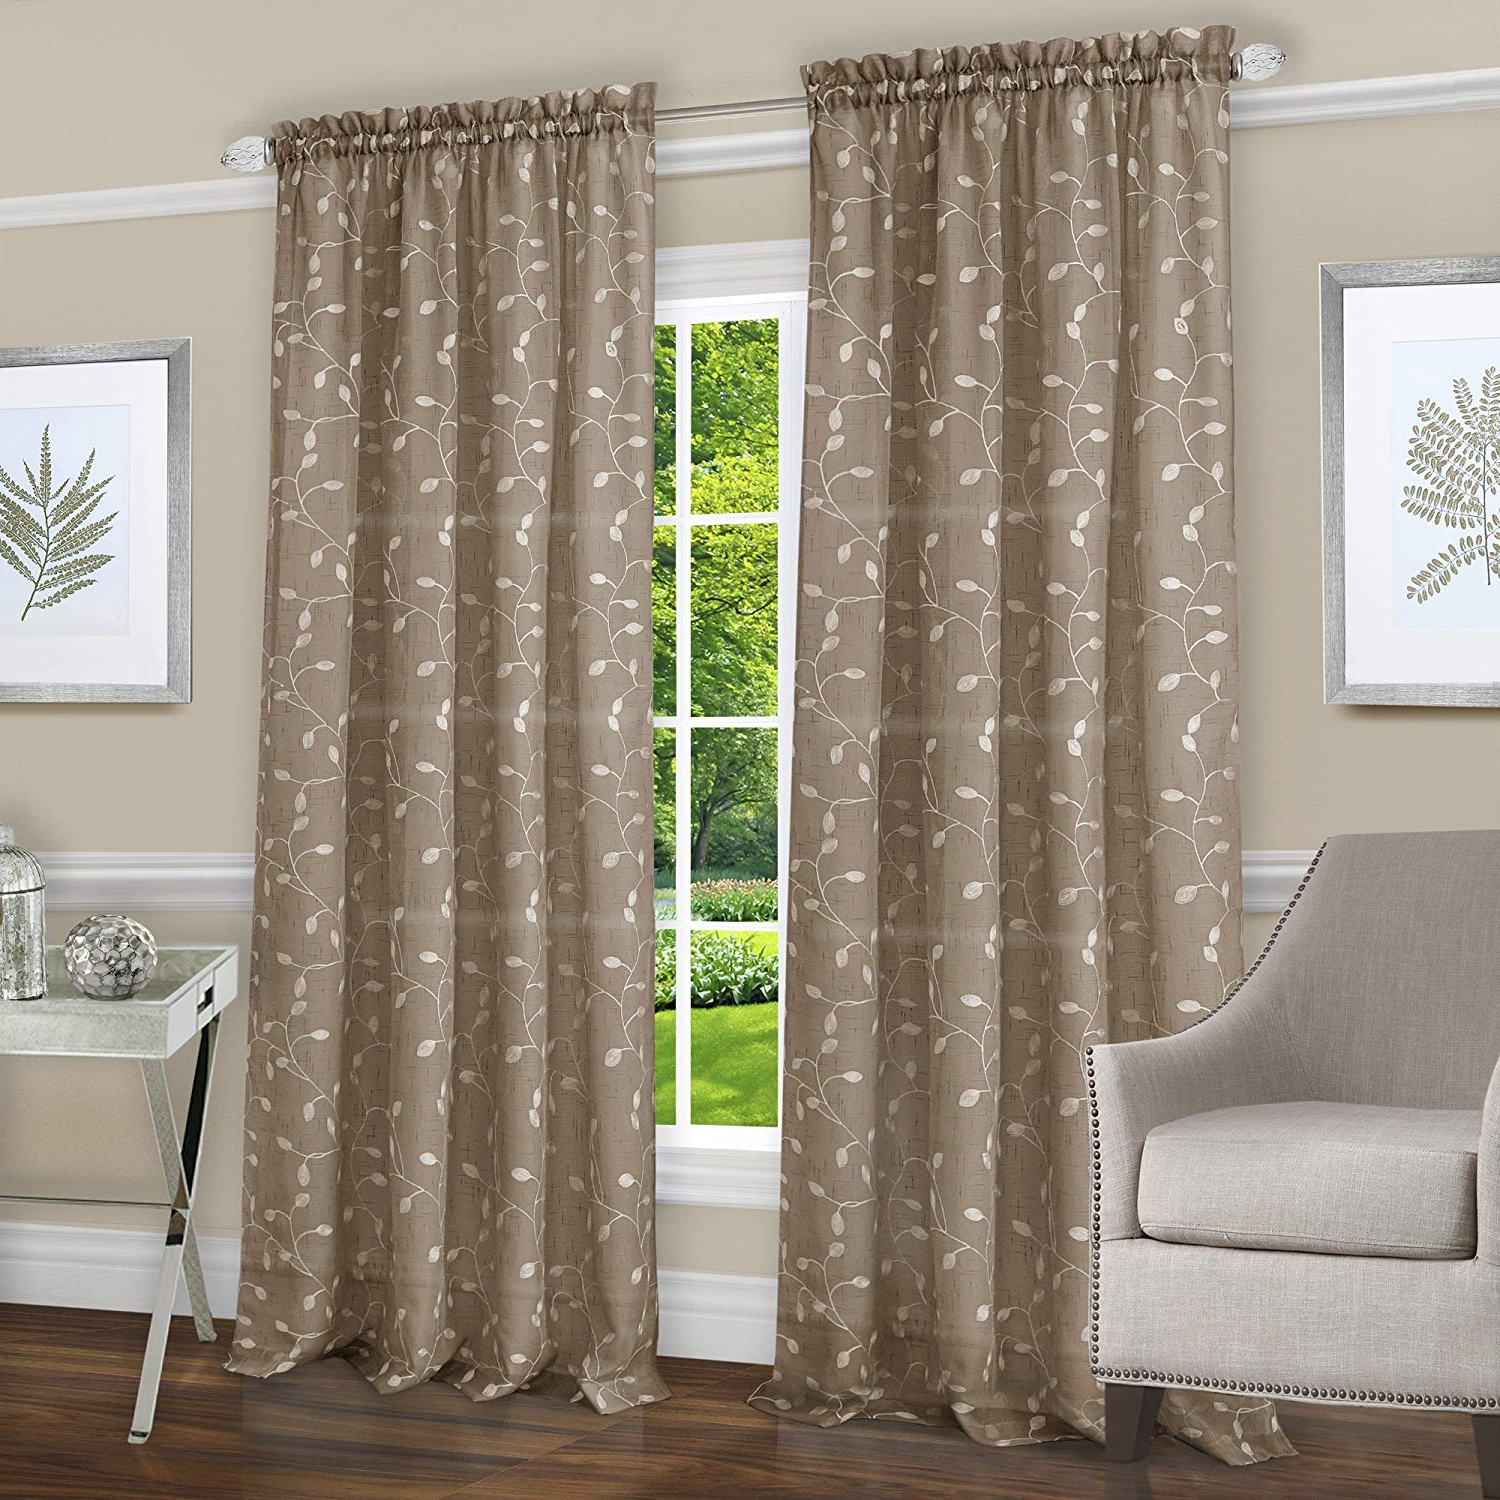 """Achim Home Furnishings Chloe Rod Pocket Window Curtain Panel, 50"""" X 84"""", Taupe Throughout Most Current Willow Rod Pocket Window Curtain Panels (View 15 of 20)"""